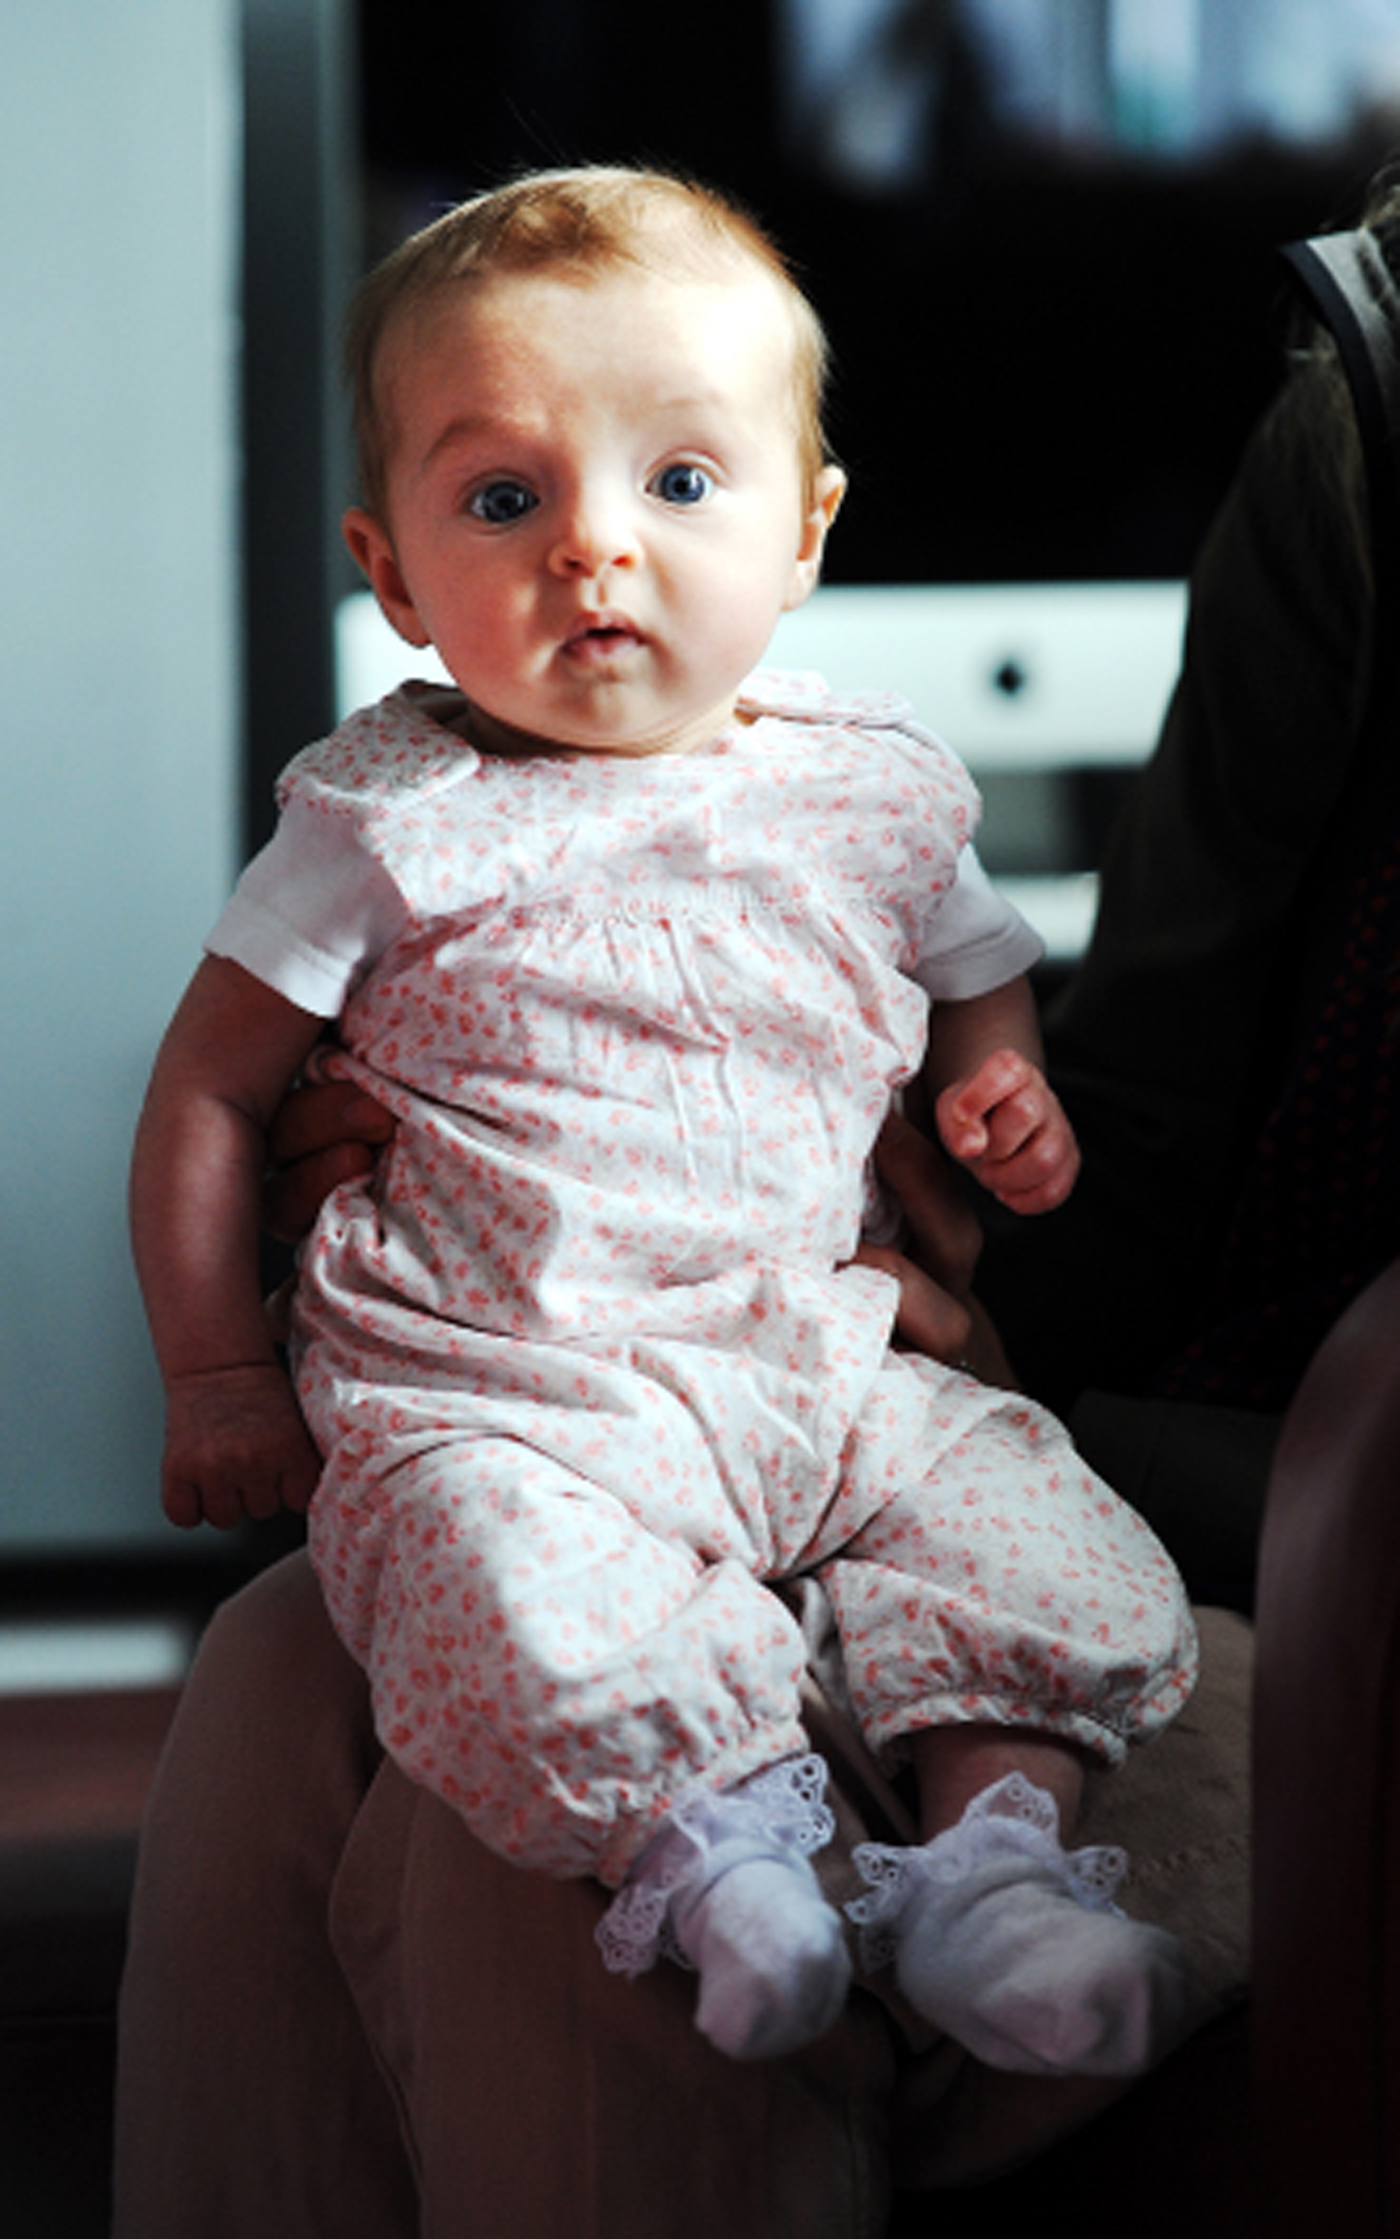 East Lancs royal fashion designer creates new baby range